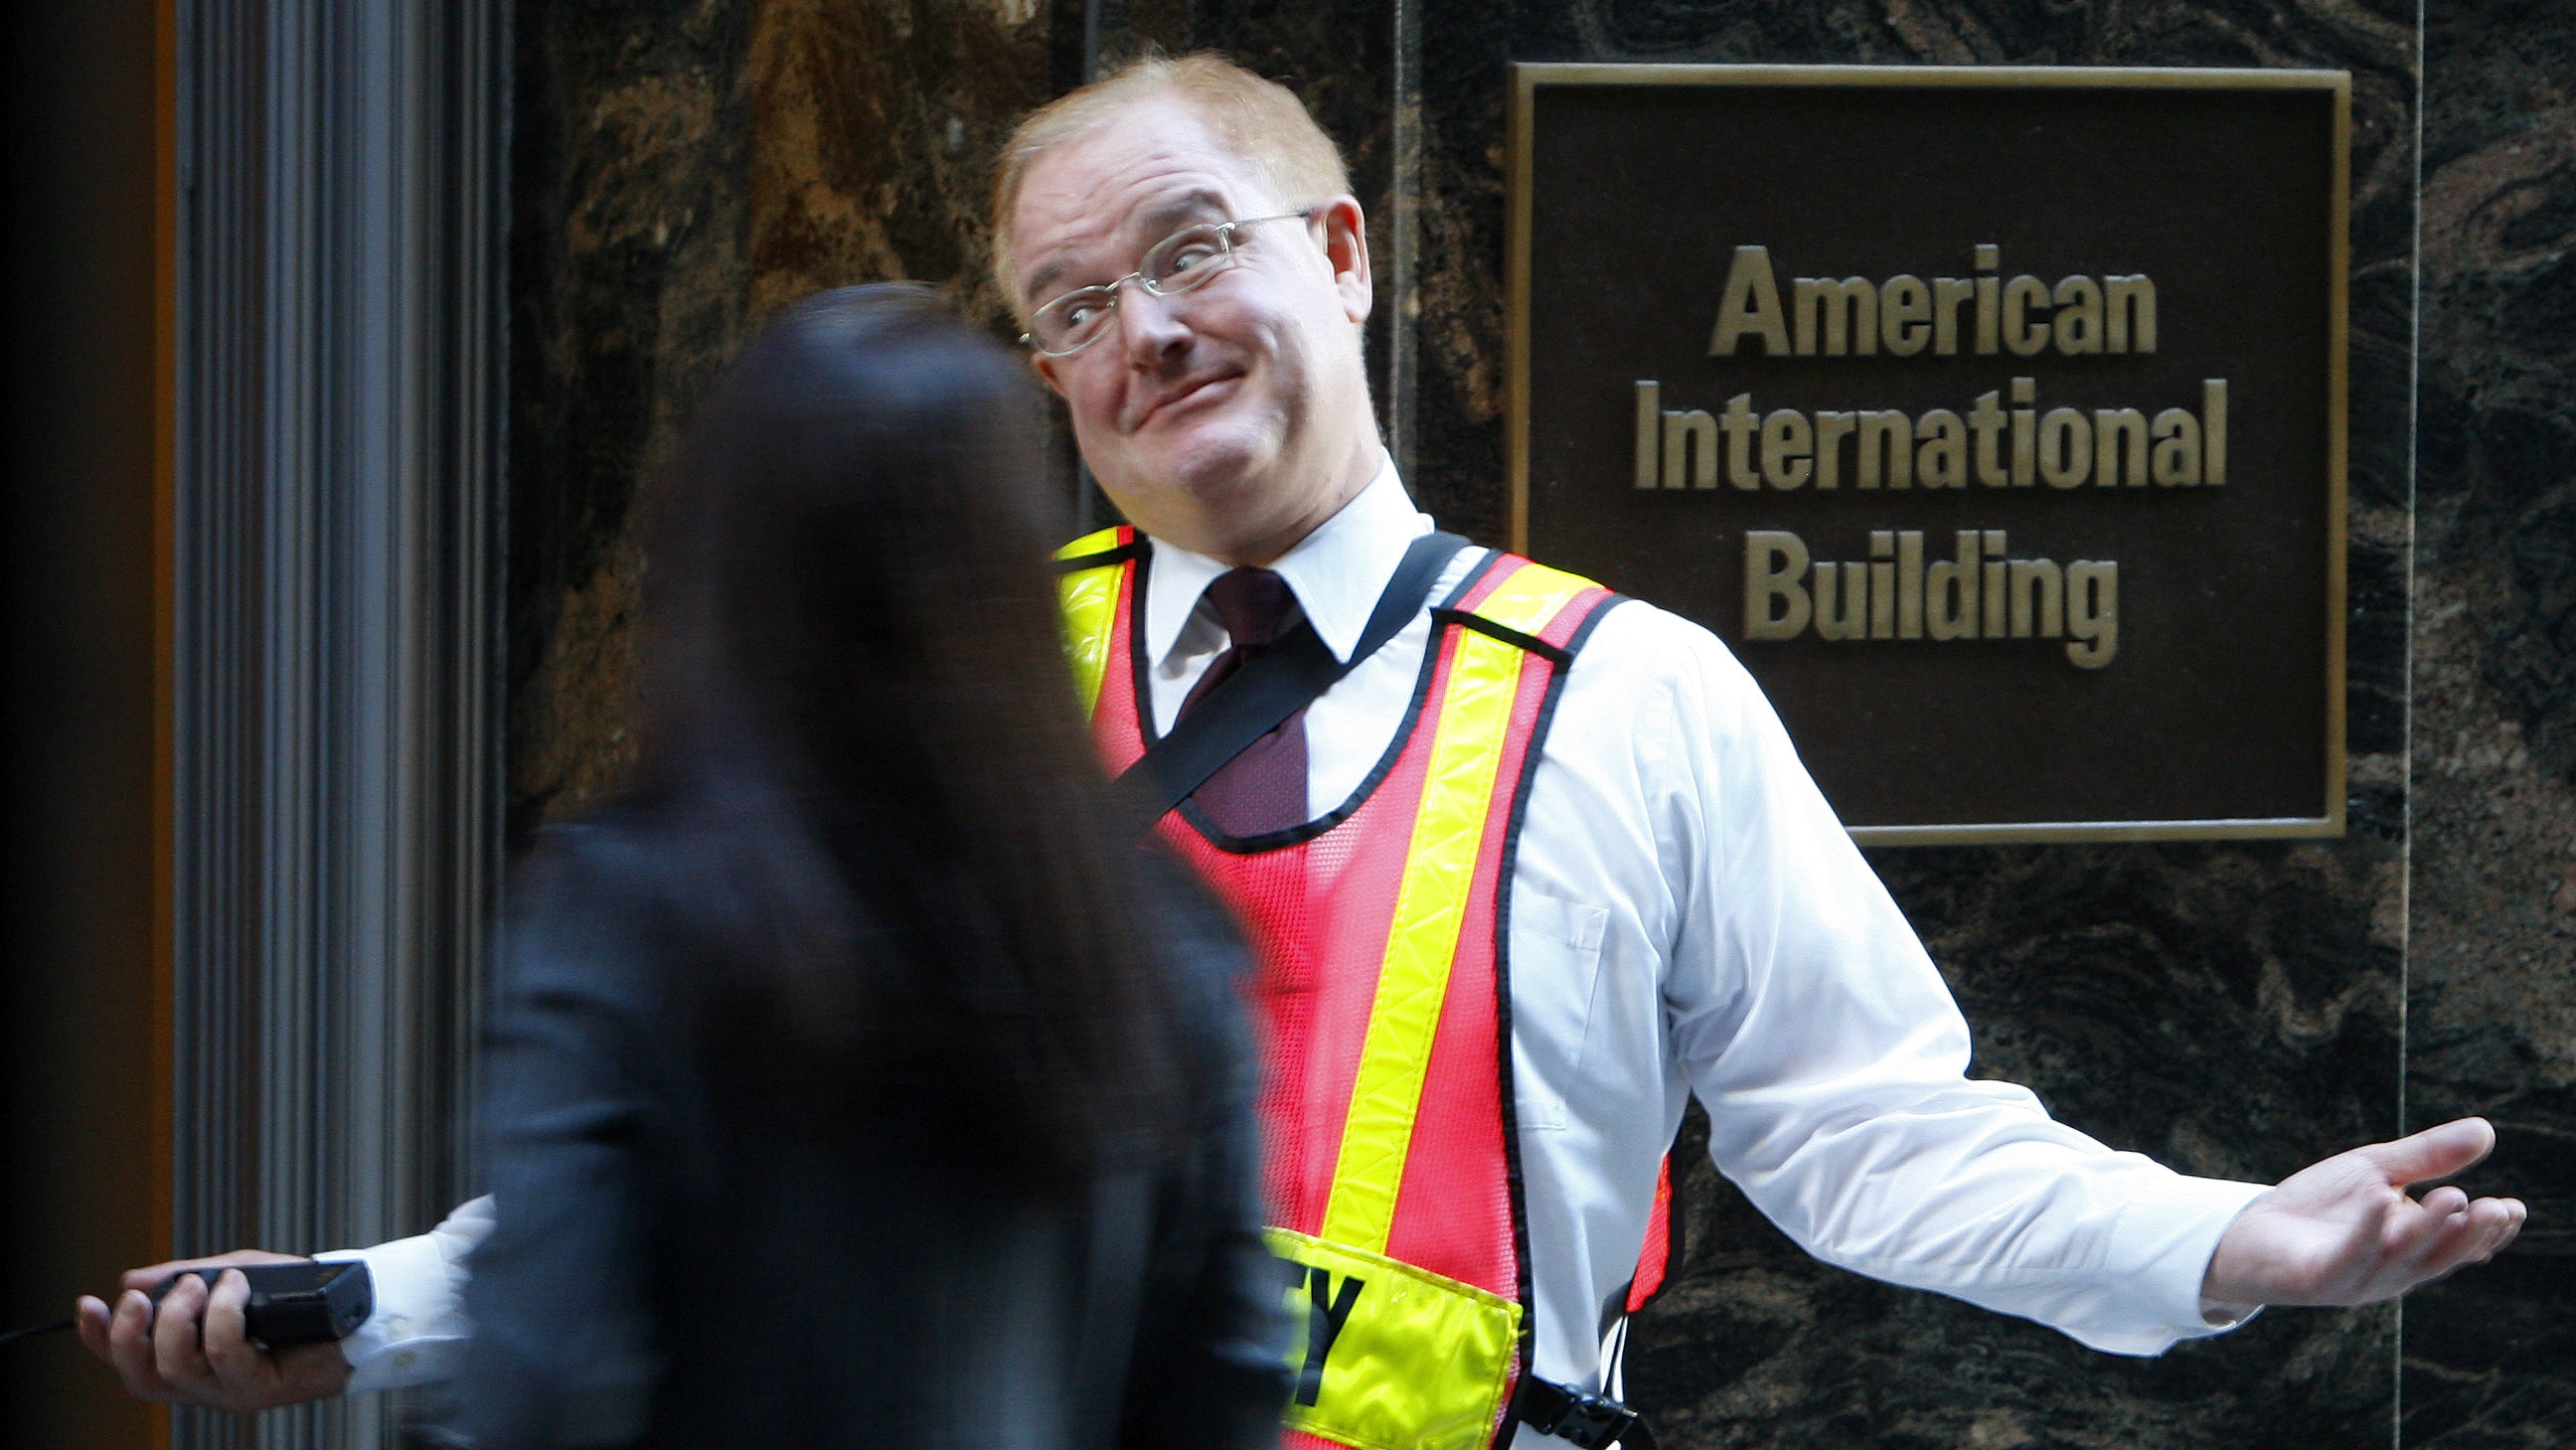 A security guard greets workers outside the AIG headquarters in New York's financial district September 15, 2008. Shares of American International Group fell more than 50 percent in early trading on reports that the insurer had turned to the Federal Reserve for $40 billion in bridge financing to ward off a liquidity crisis and ratings downgrades. REUTERS/Brendan McDermid